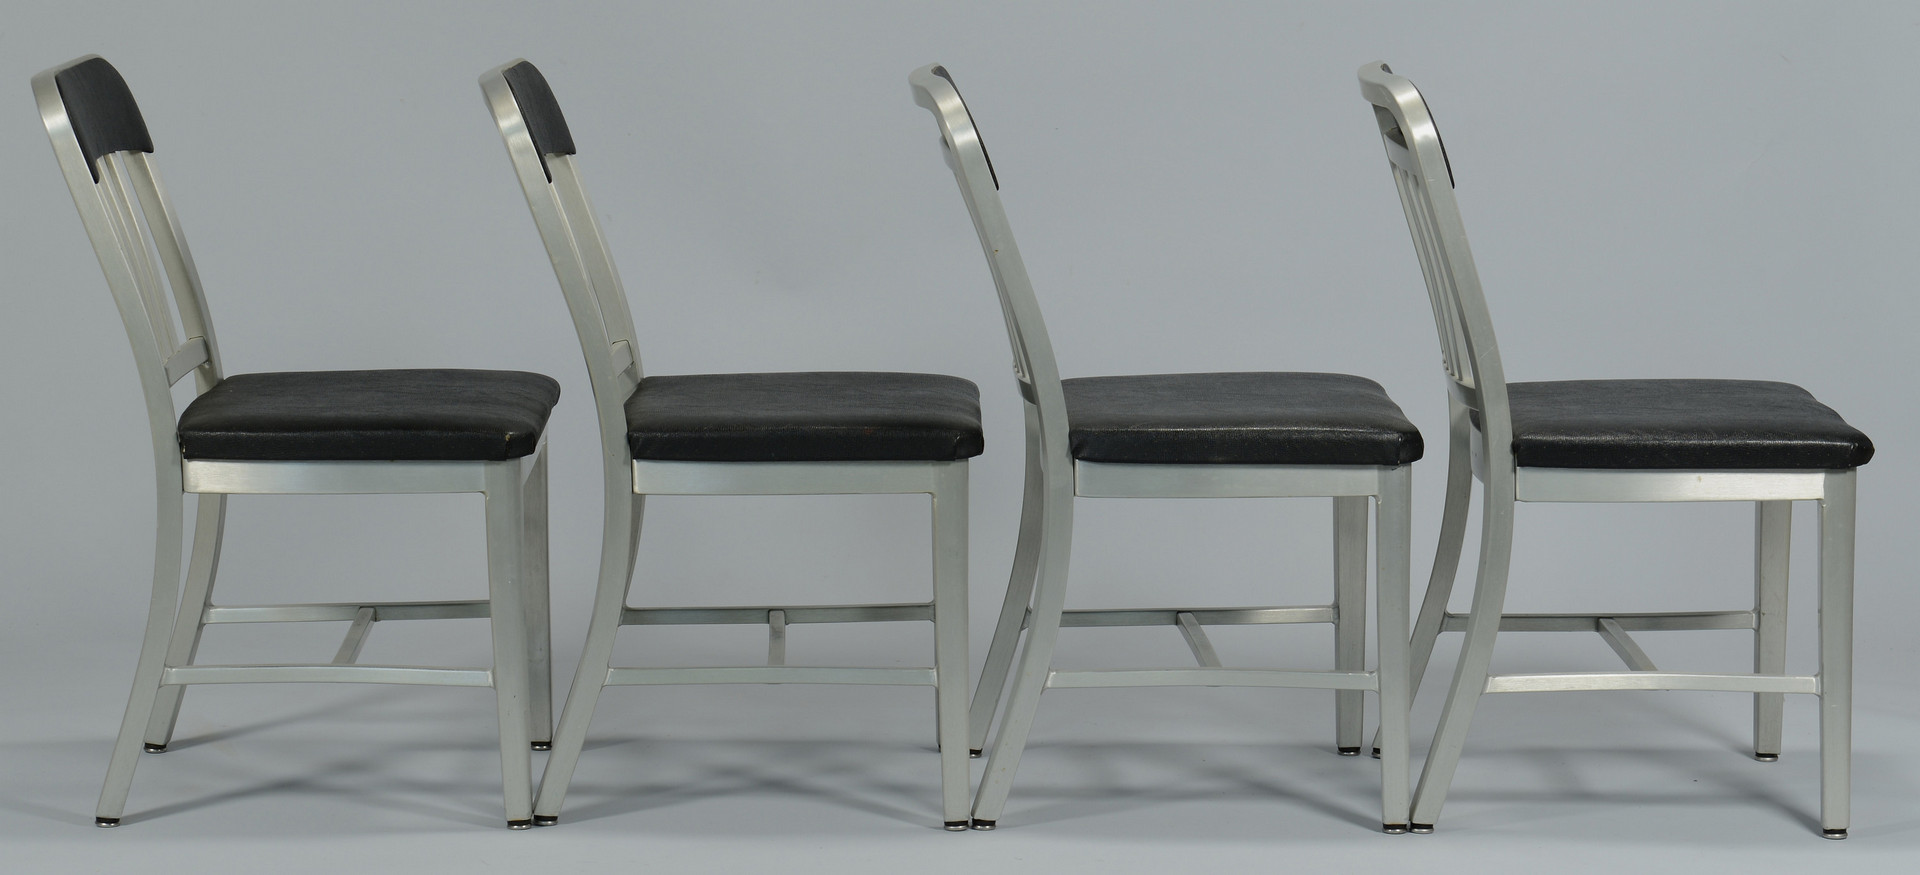 Lot 524: Set of 4 Emeco Navy Chairs